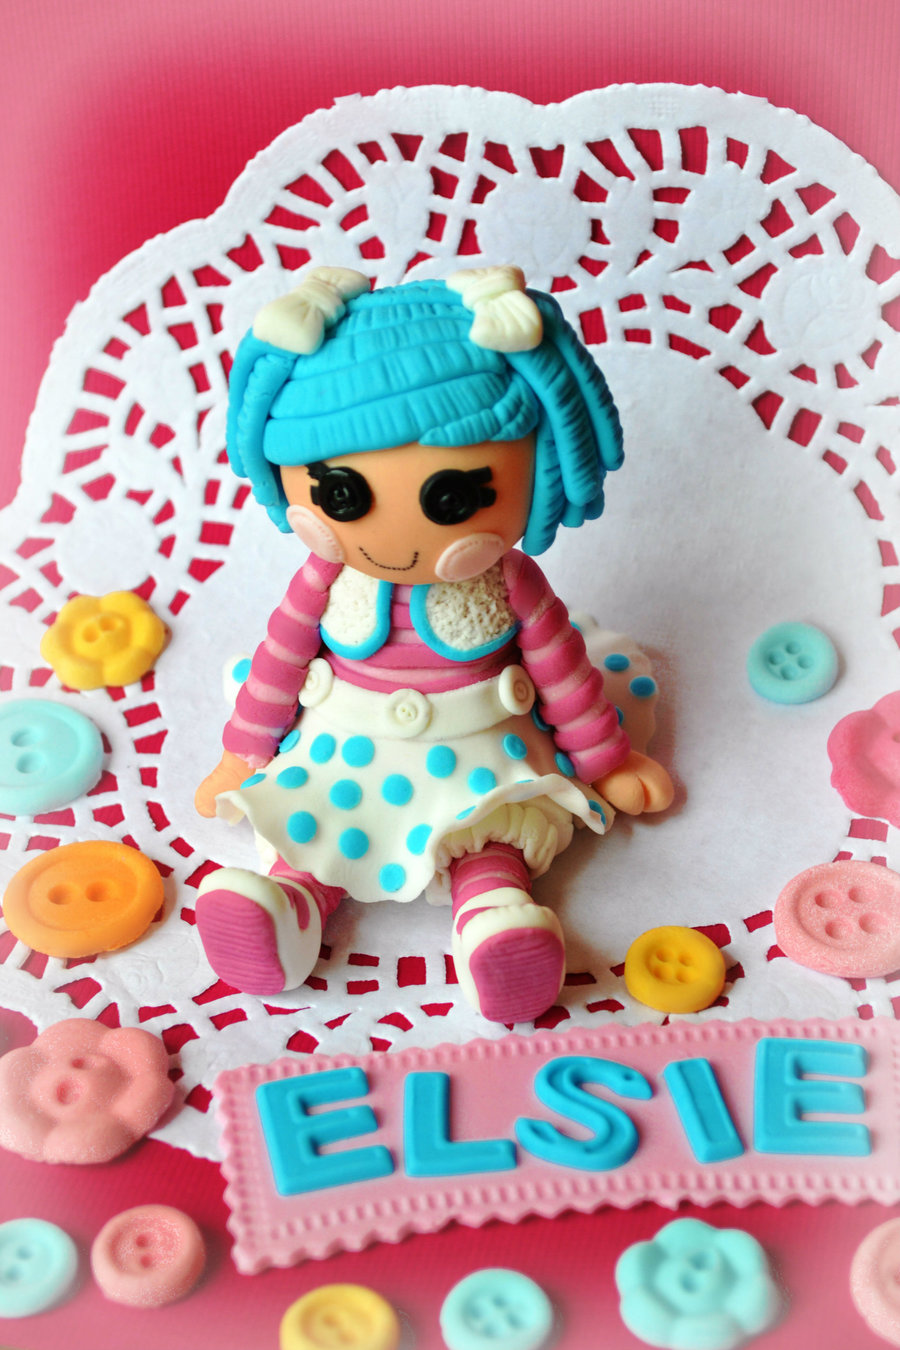 I Was Asked To Do A Lalaloopsy Cakeunfortunately I Already Had A Cake To Make That Day I Did However Make A Little Doll Topper And T  on Cake Central